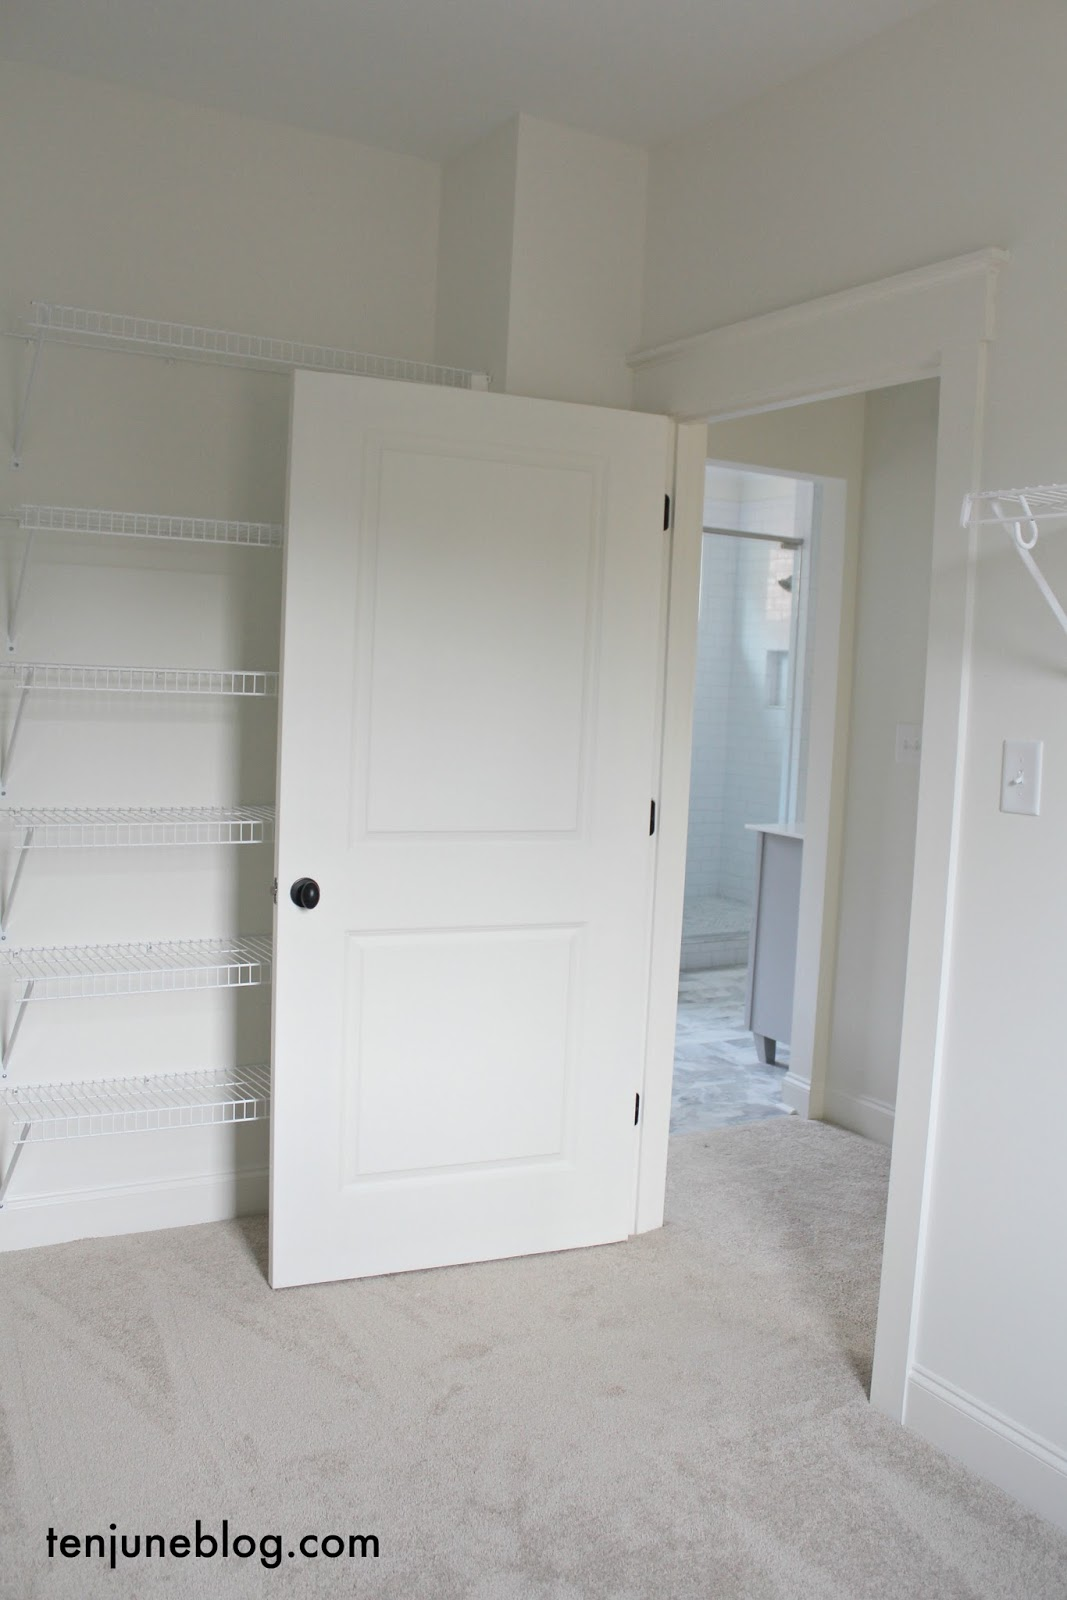 Ten June My Master Bedroom And Closet A Blank Slate